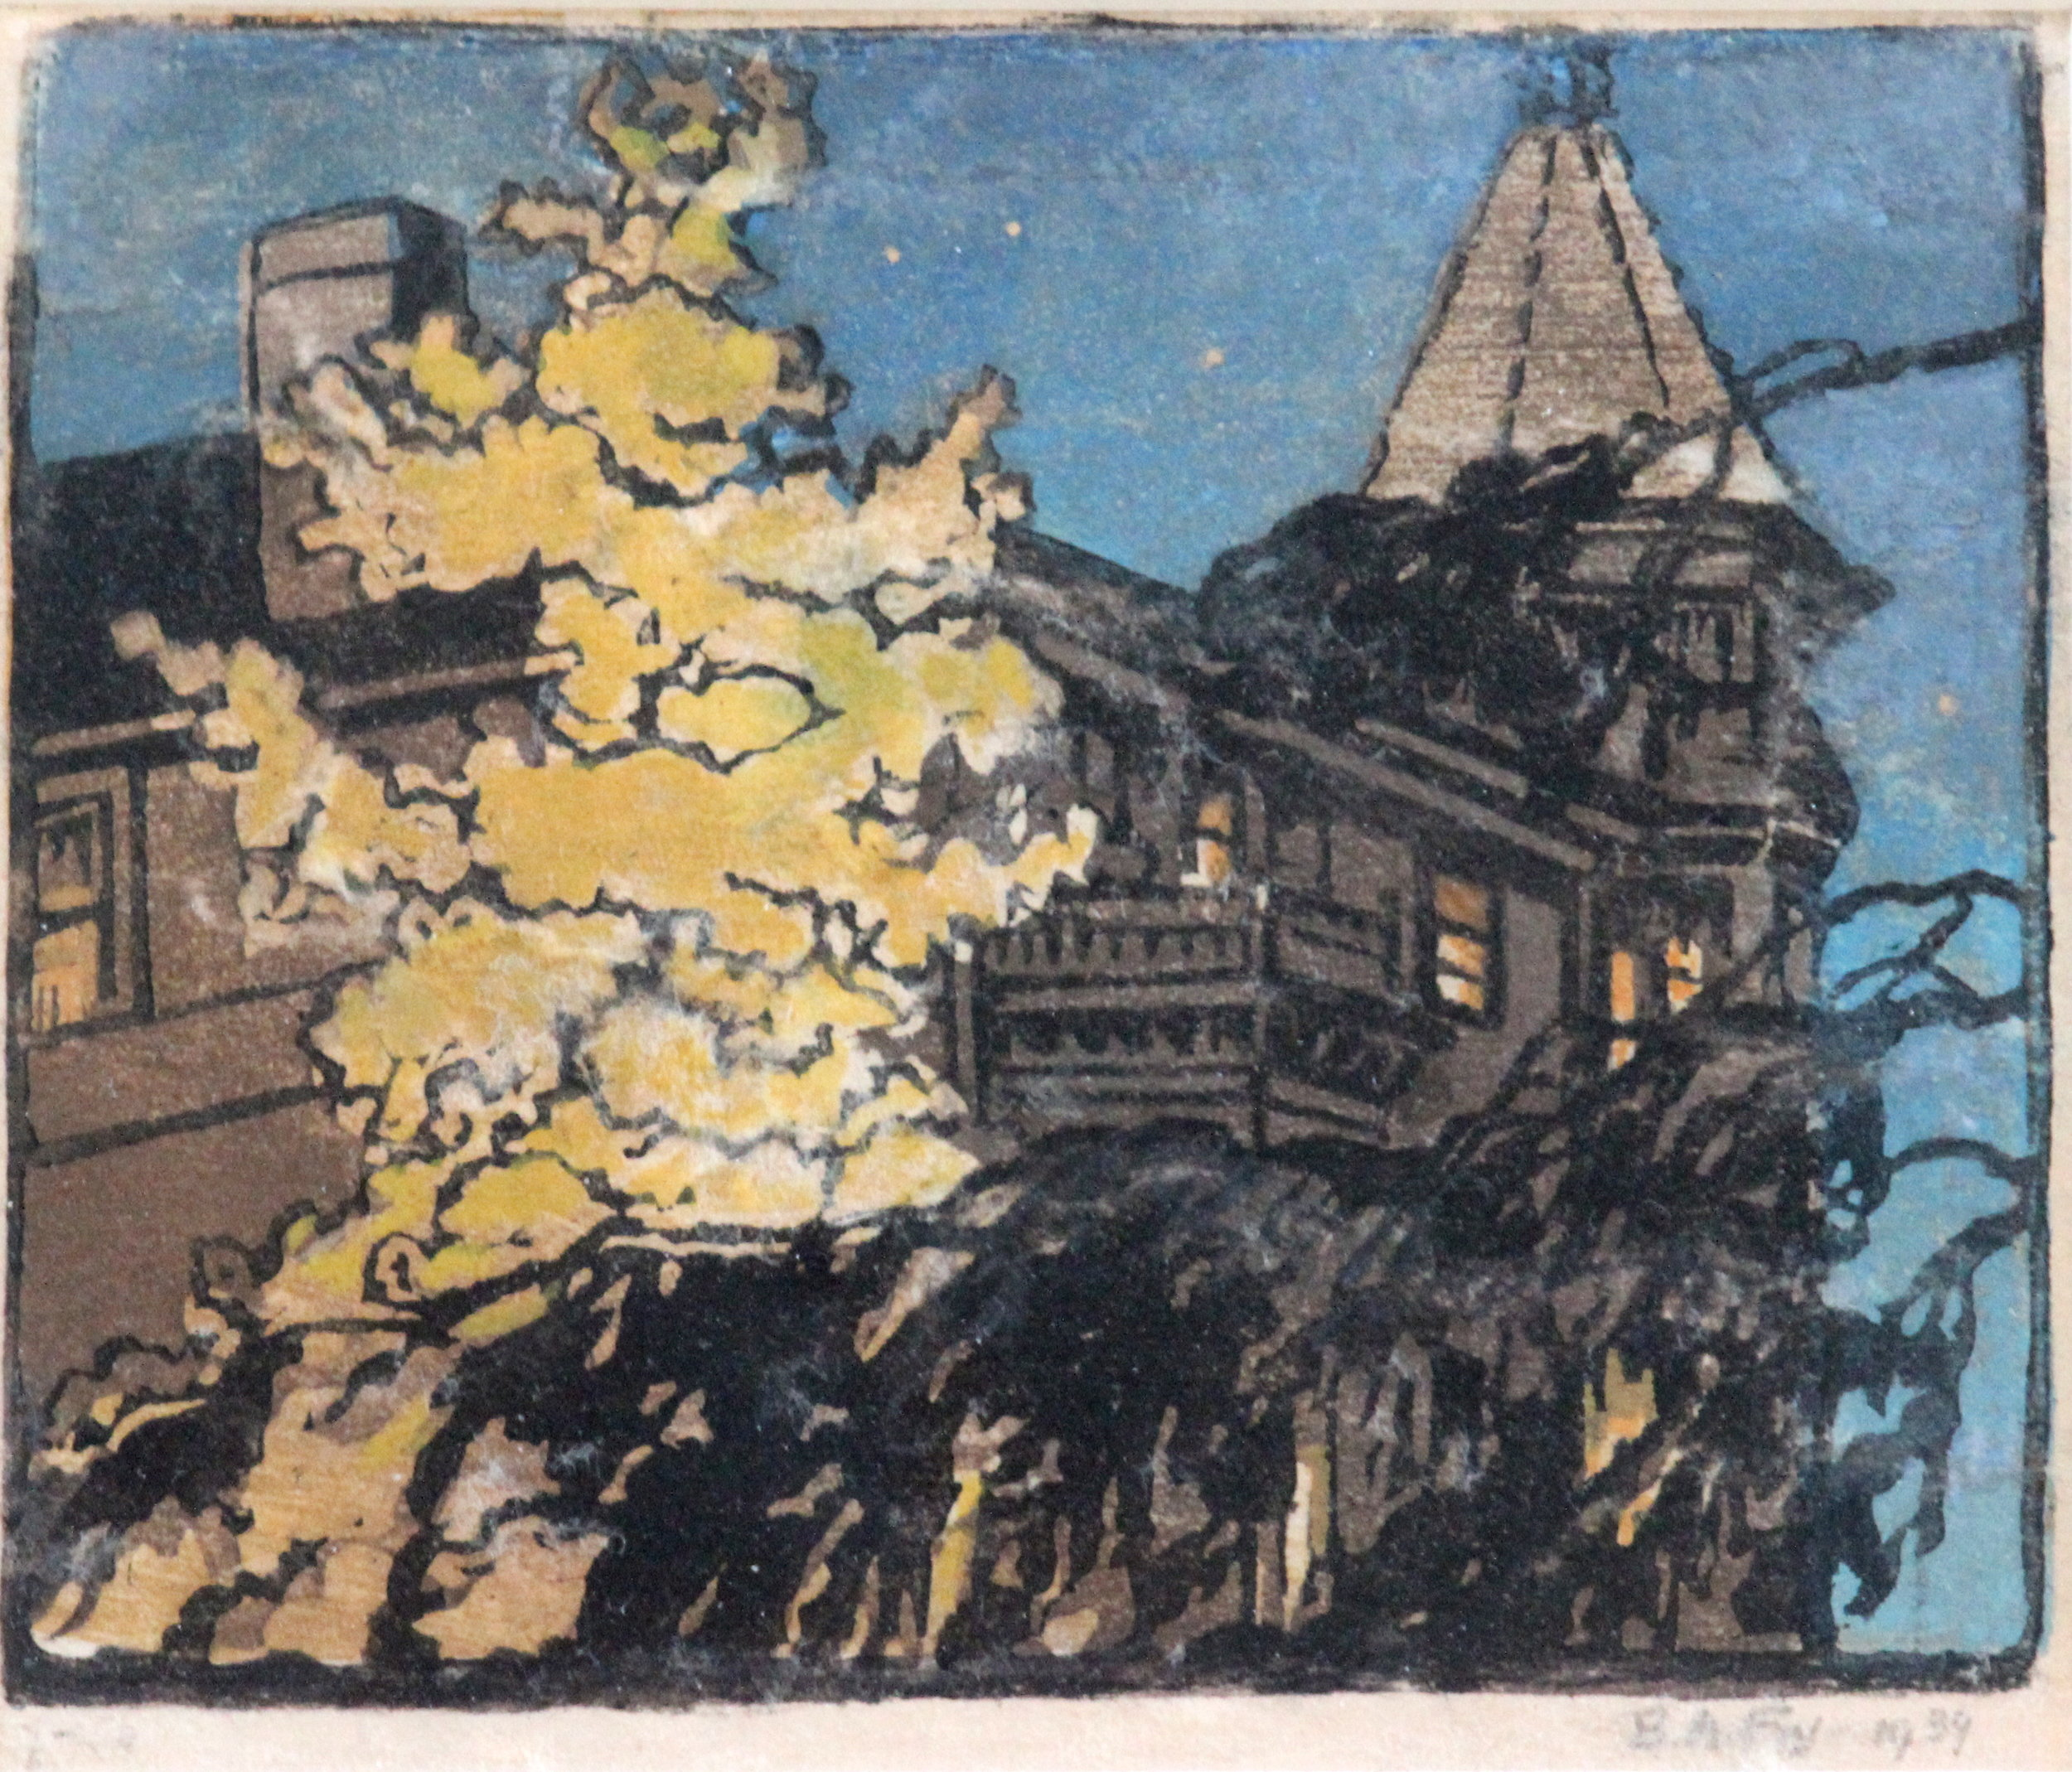 Bessie Adelaide Fry, Tree & Old House with Turret, 1939